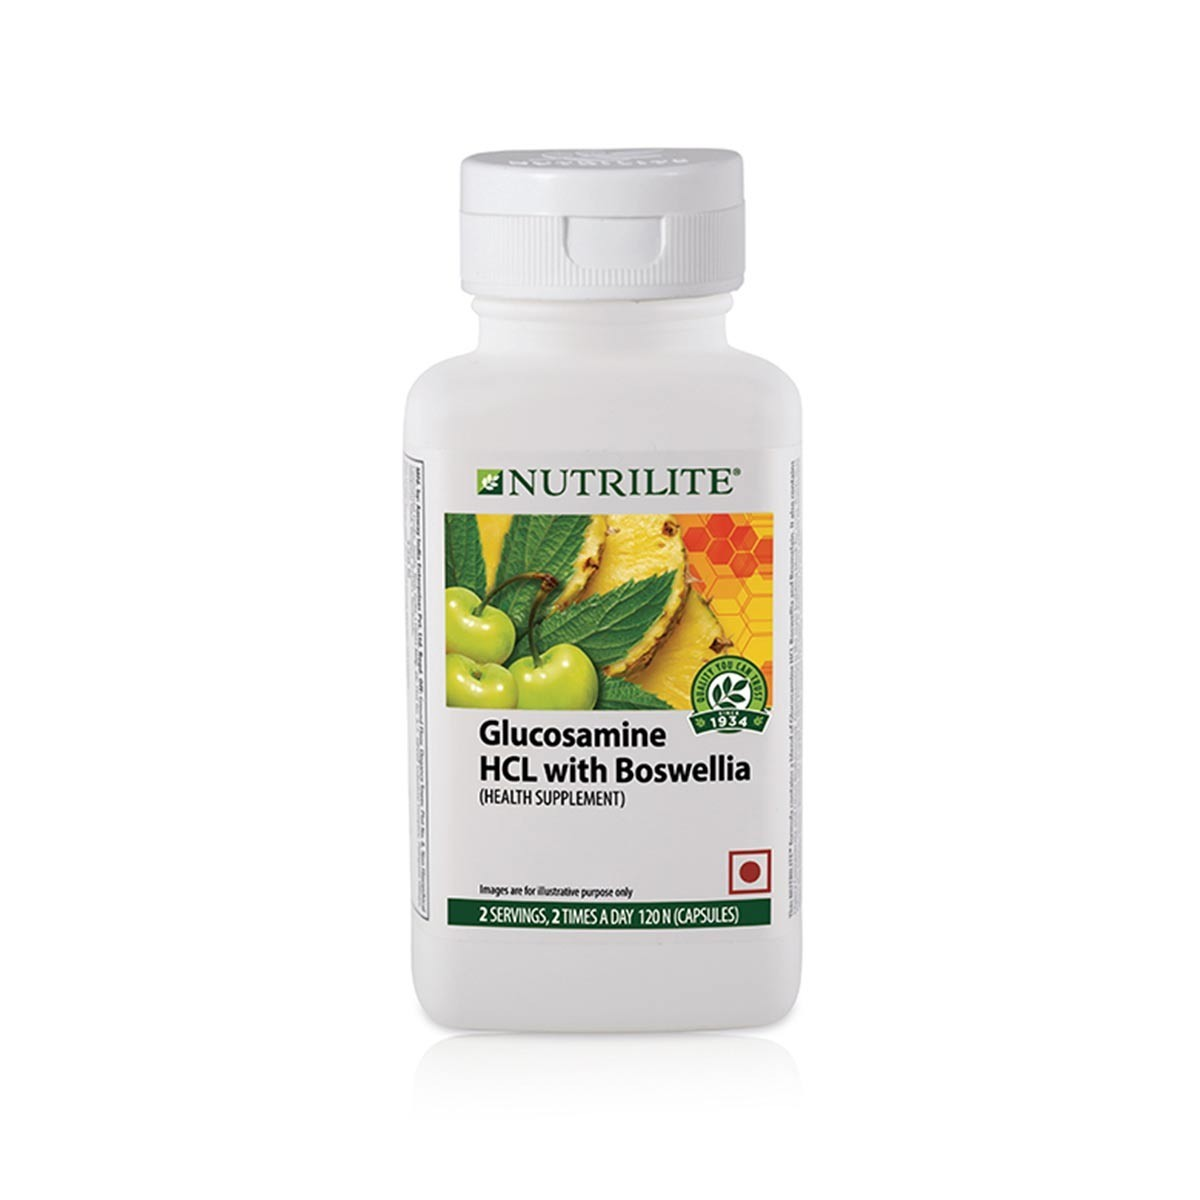 Amway Nutrilite Glucosamine HCL with Boswellia (120 capsules)